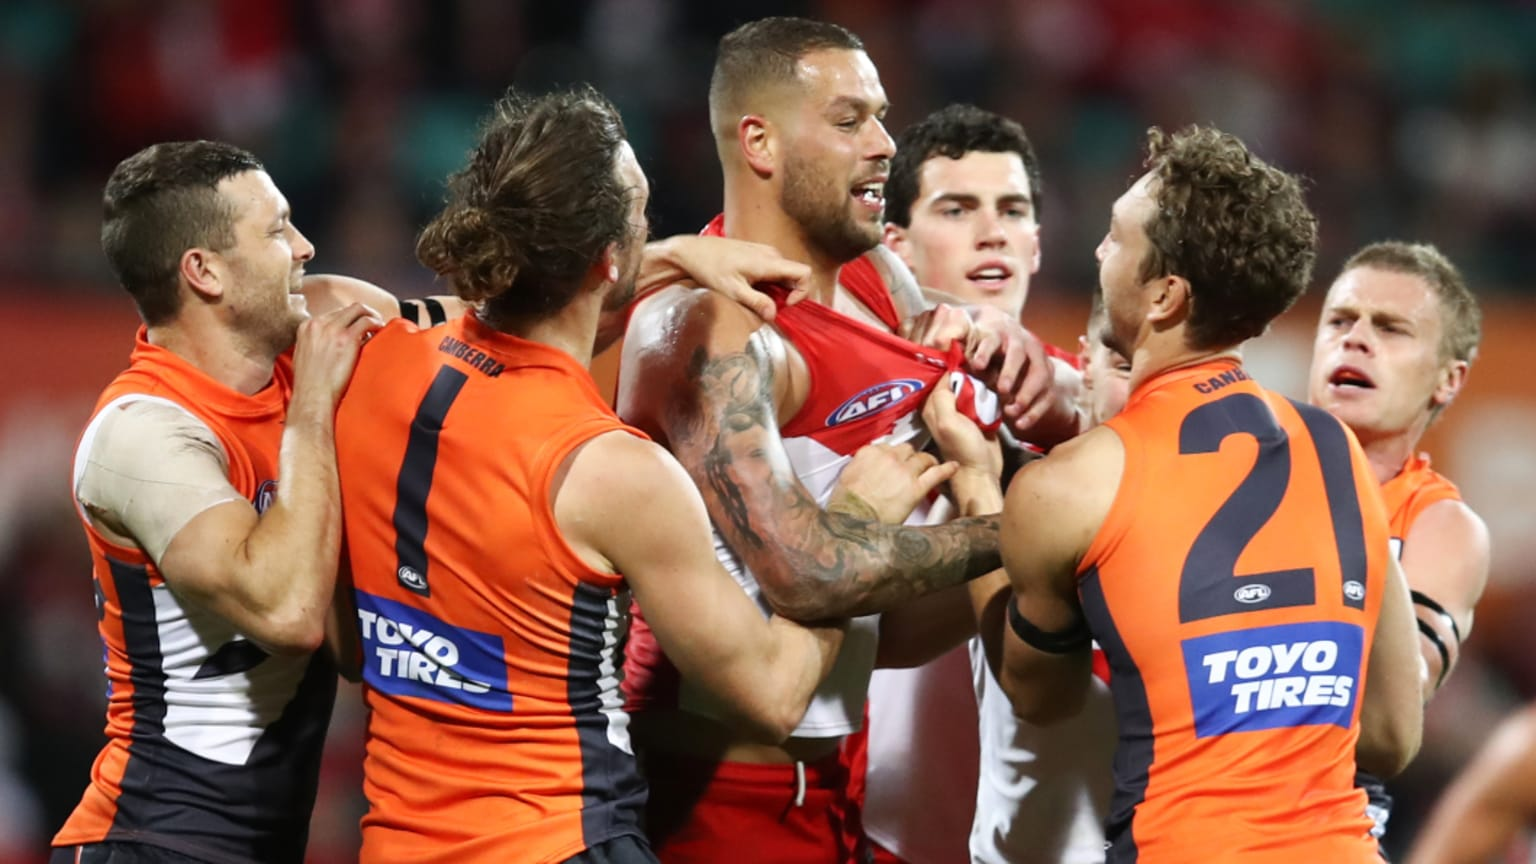 swans vs collingwood - HD 1396×785